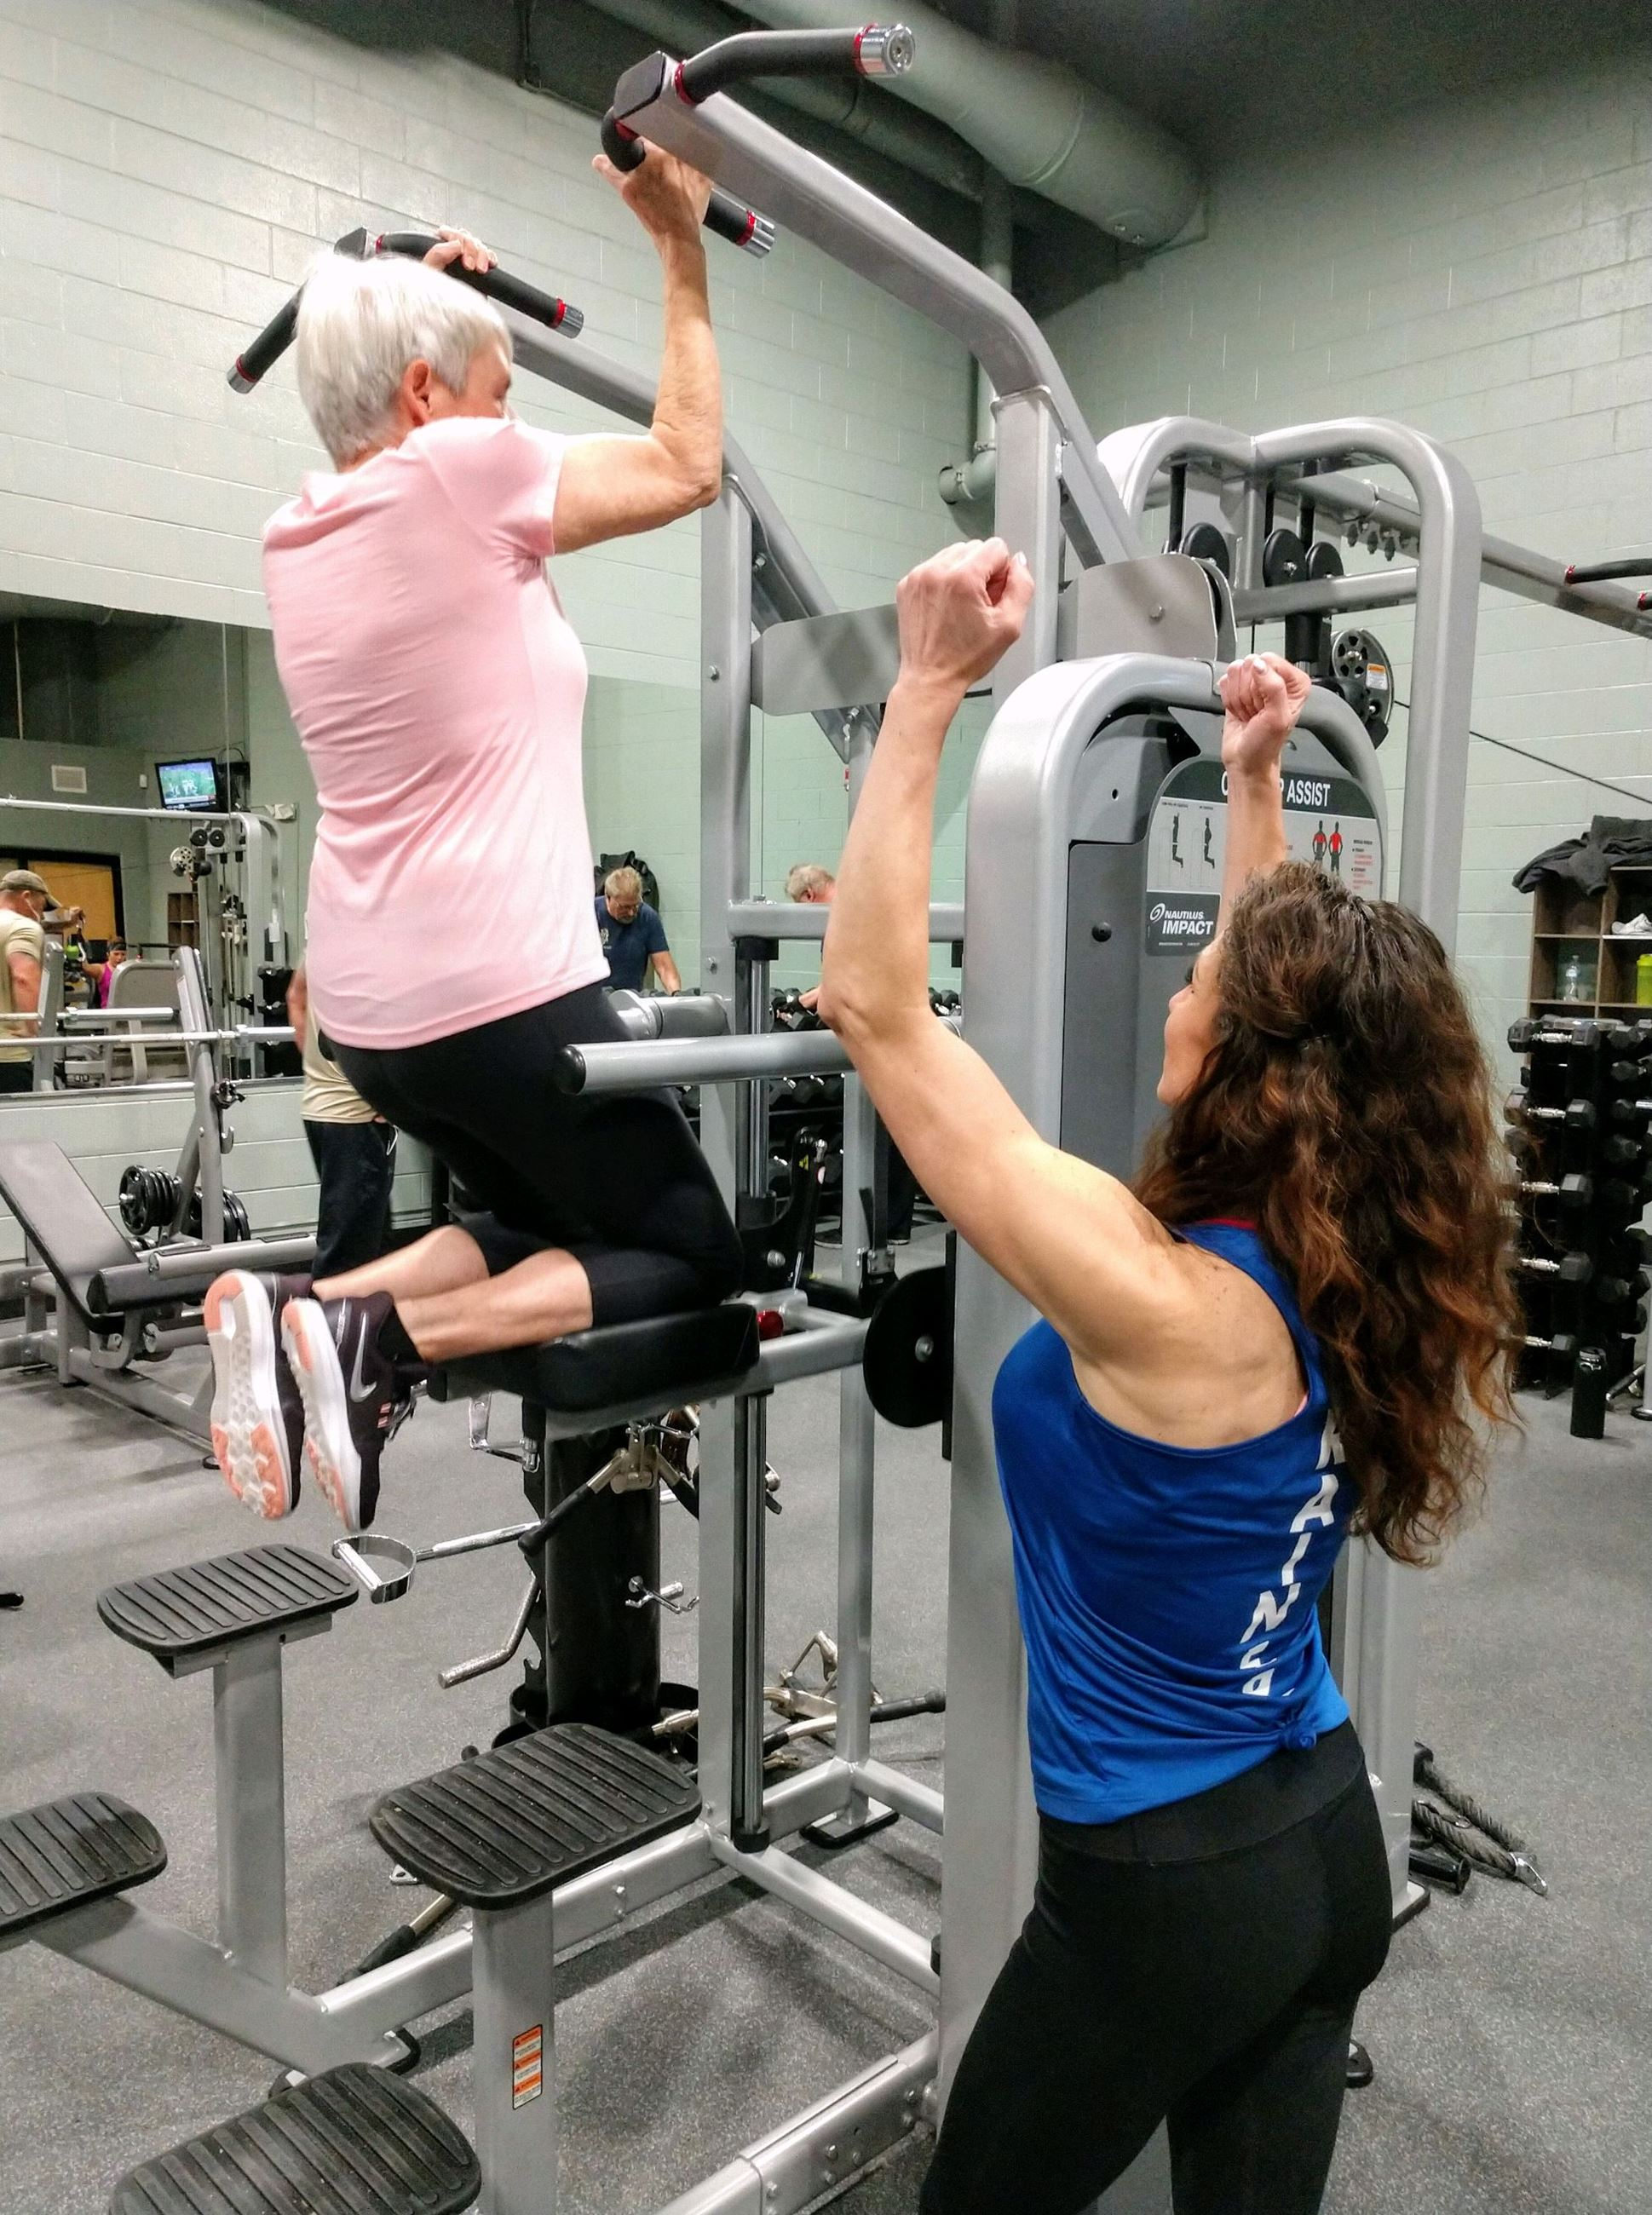 Female trainer helping woman train in gym.